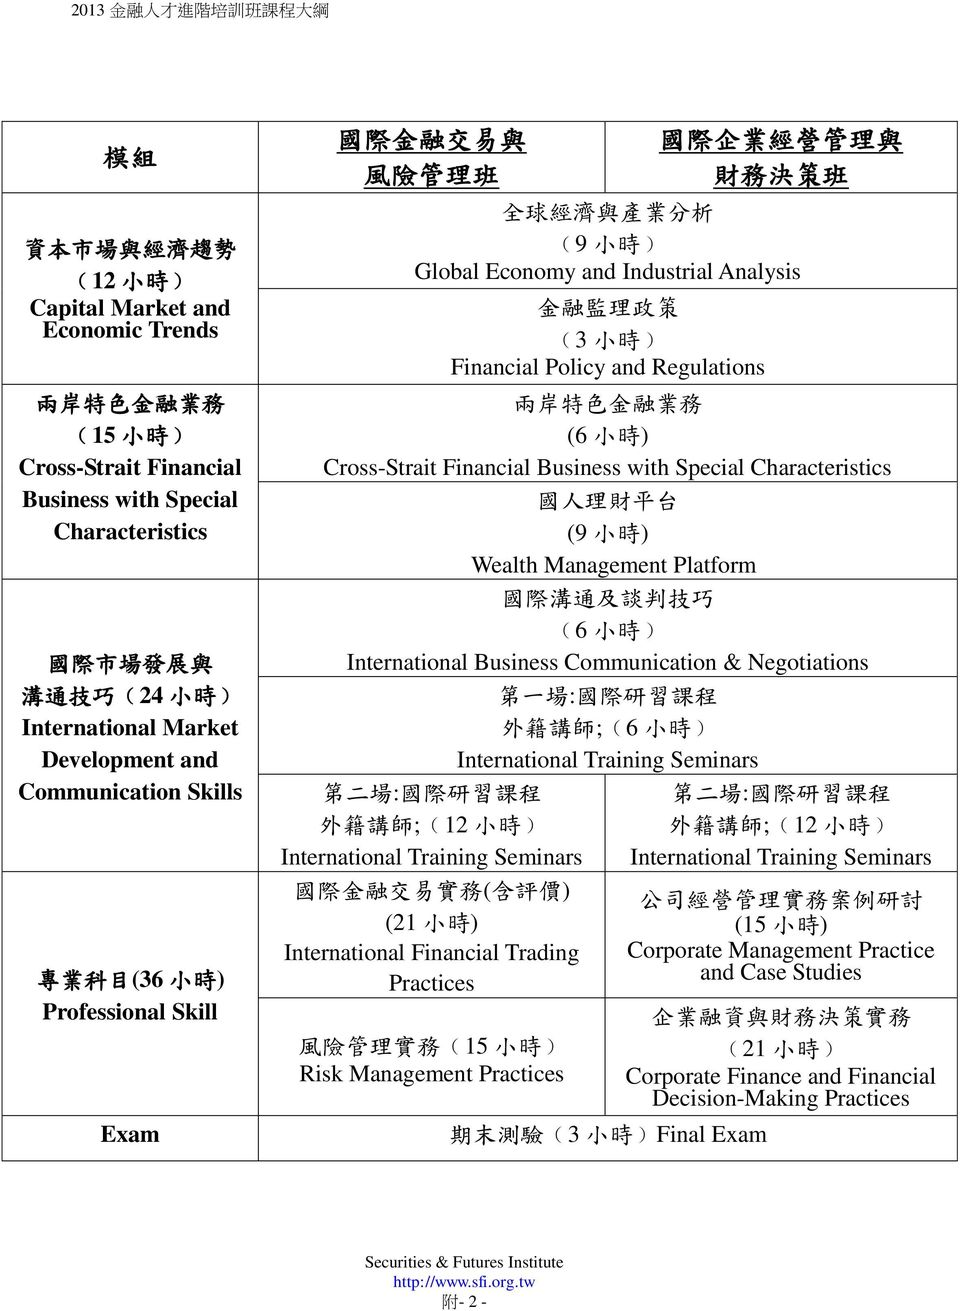 Analysis 金 融 監 理 政 策 (3 小 時 ) Financial Policy and Regulations 兩 岸 特 色 金 融 業 務 (6 小 時 ) Cross-Strait Financial Business with Special Characteristics 國 人 理 財 平 台 (9 小 時 ) Wealth Management Platform 國